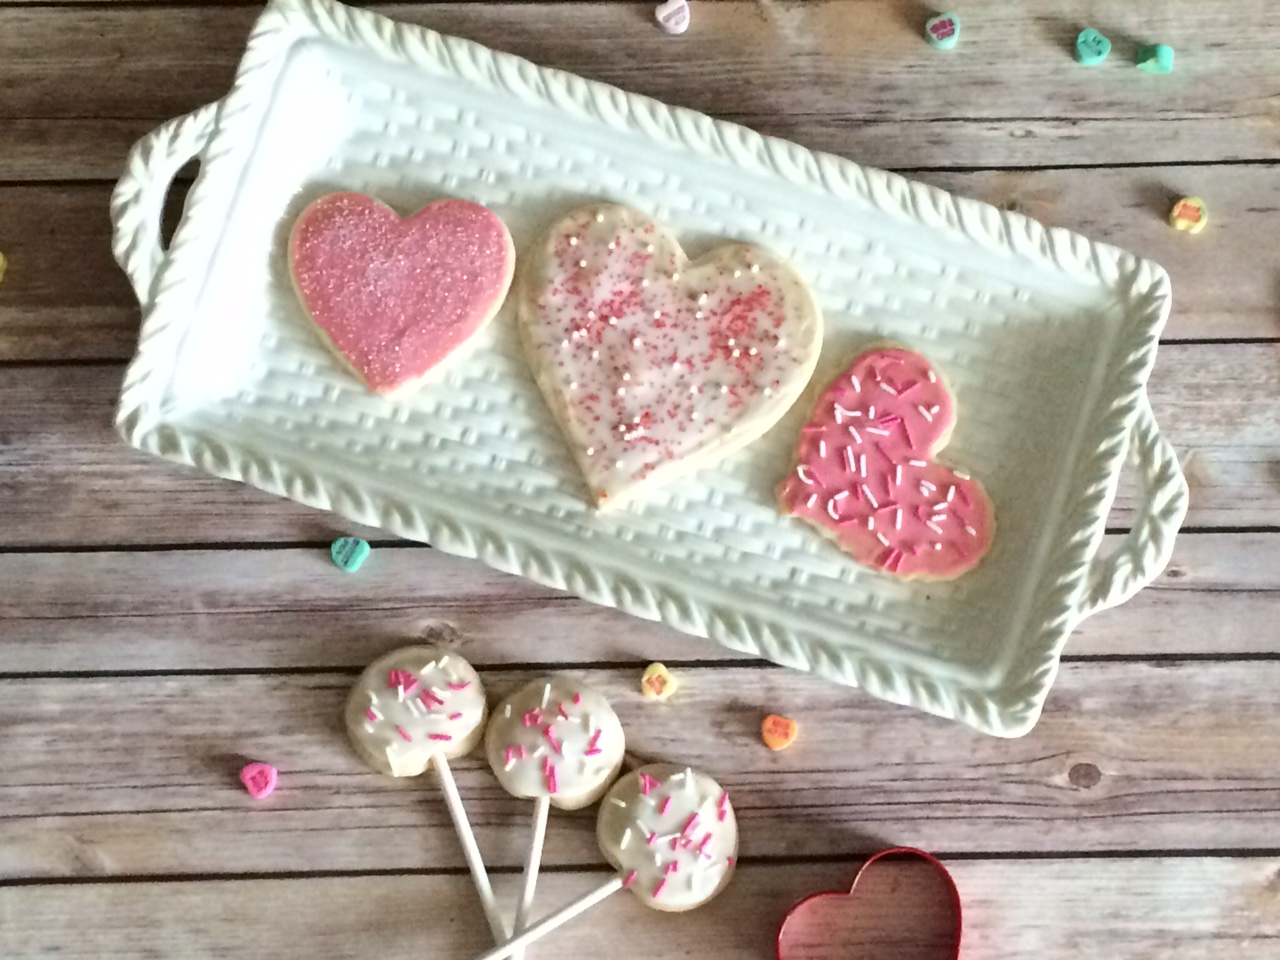 You are going to want to make these homemade Valentine's Day Cut-Out Sugar Cookies! #ValentinesDay #Valentine #valentinedessert #valentinecookies #cookies #cookierecipe #sugarcookies #frostedcookies #sugarcookierecipe #homemadecookies